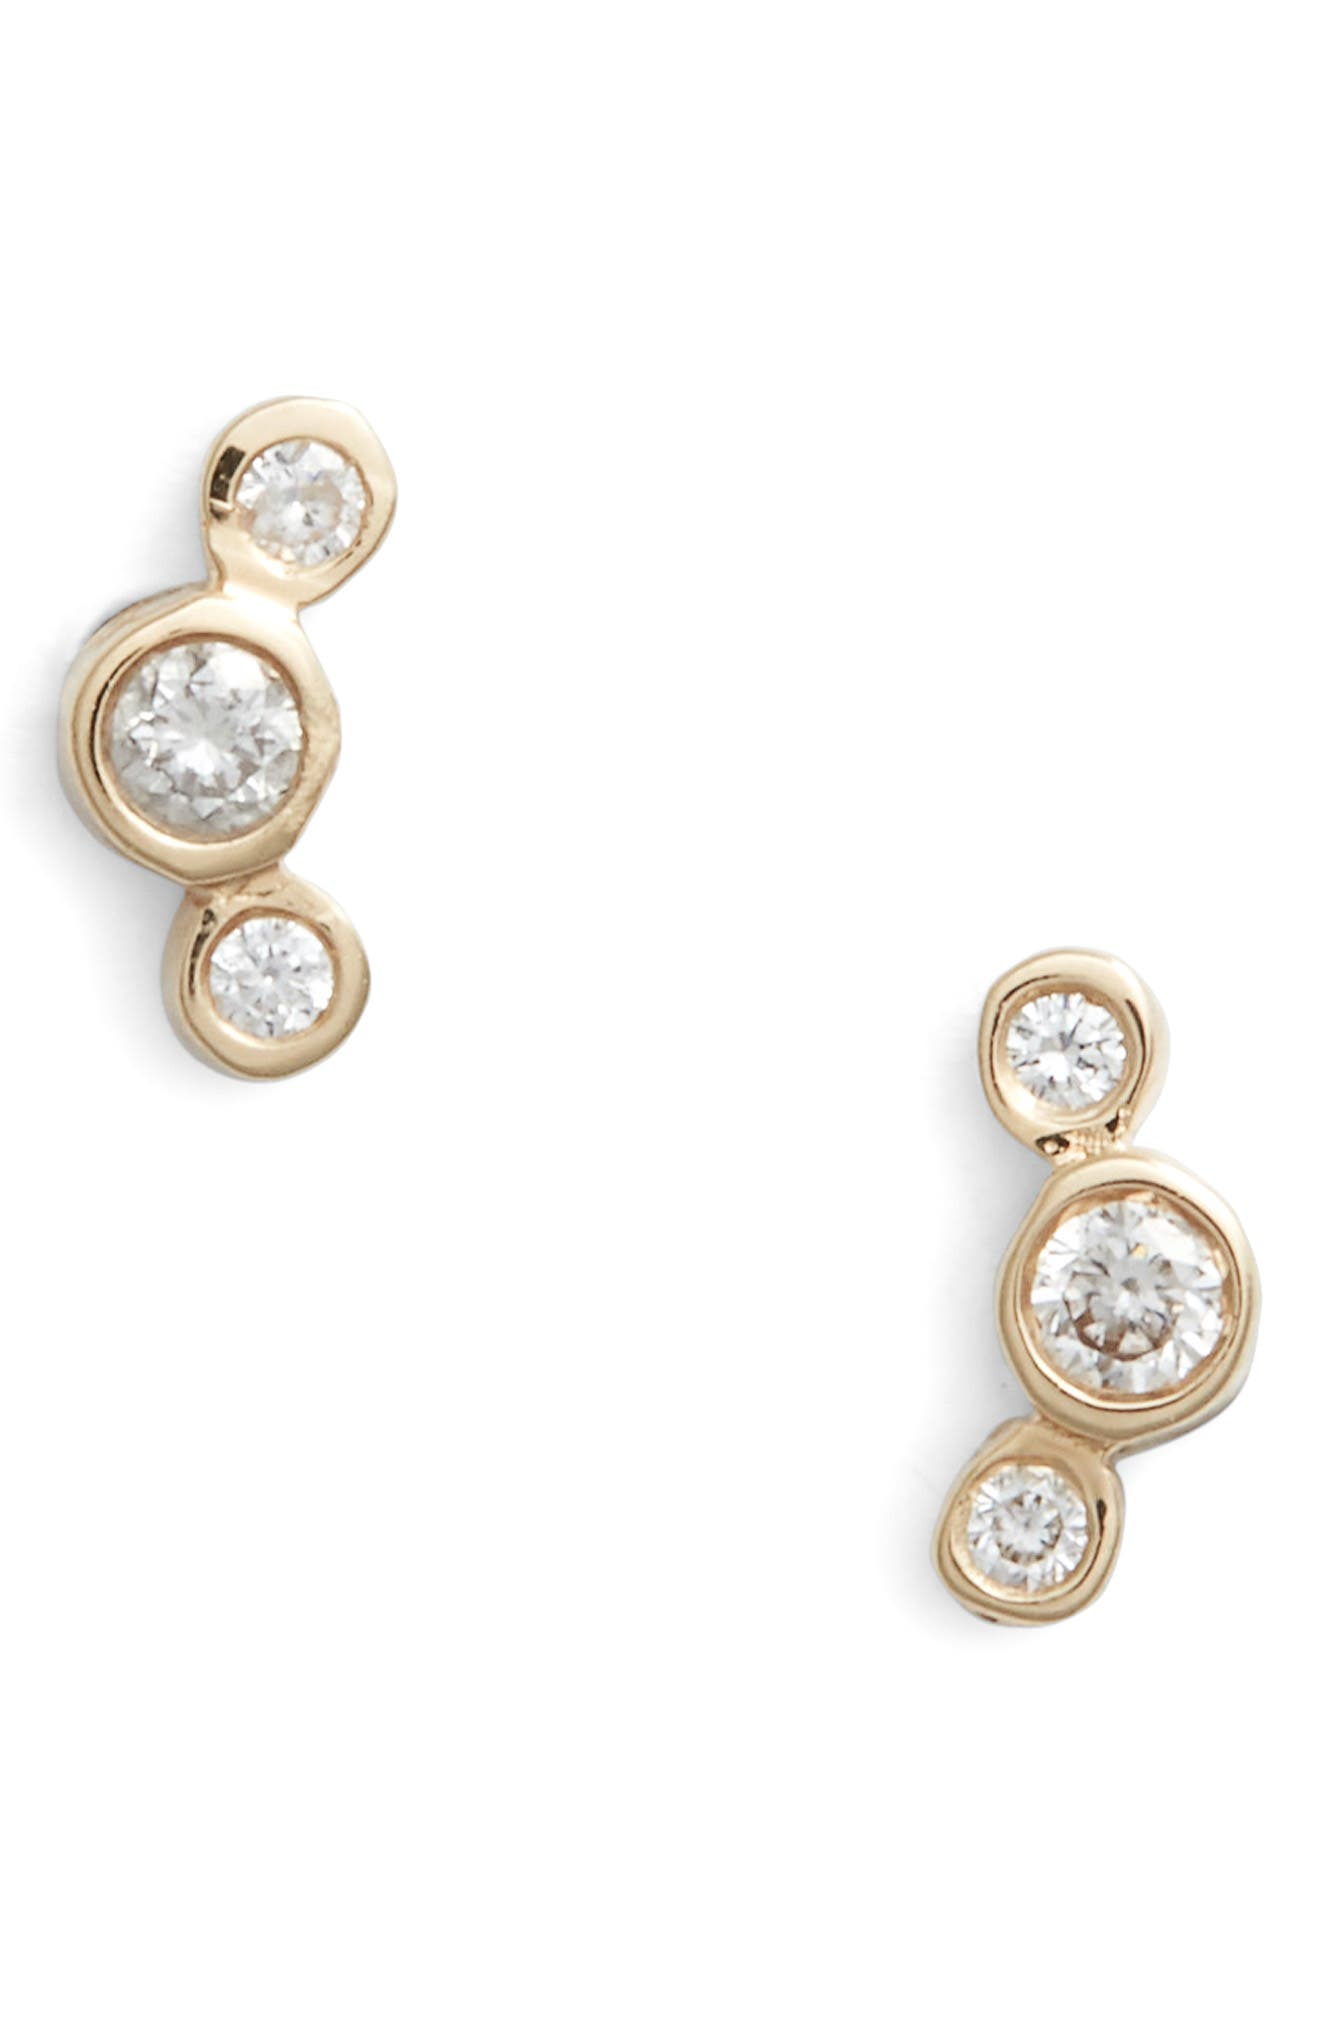 Curved 3-Diamond Stud Earrings,                             Main thumbnail 1, color,                             Yellow Gold